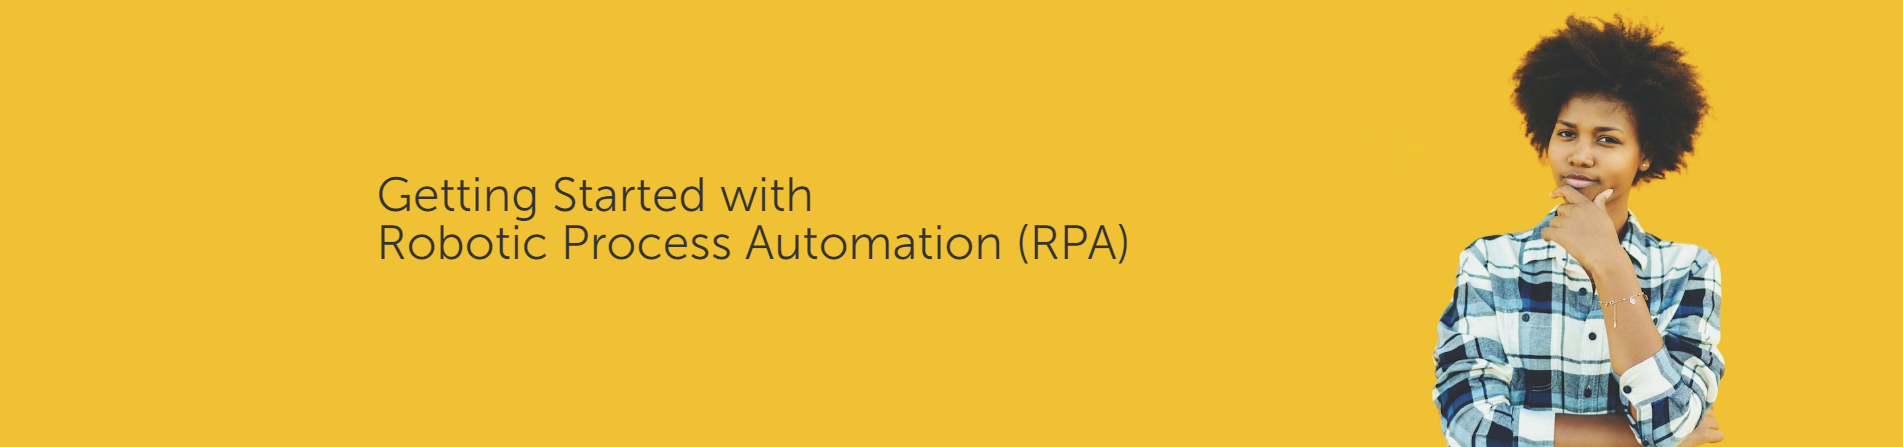 Sign up for the Getting Started with RPA learning trail on Automation Anywhere university.